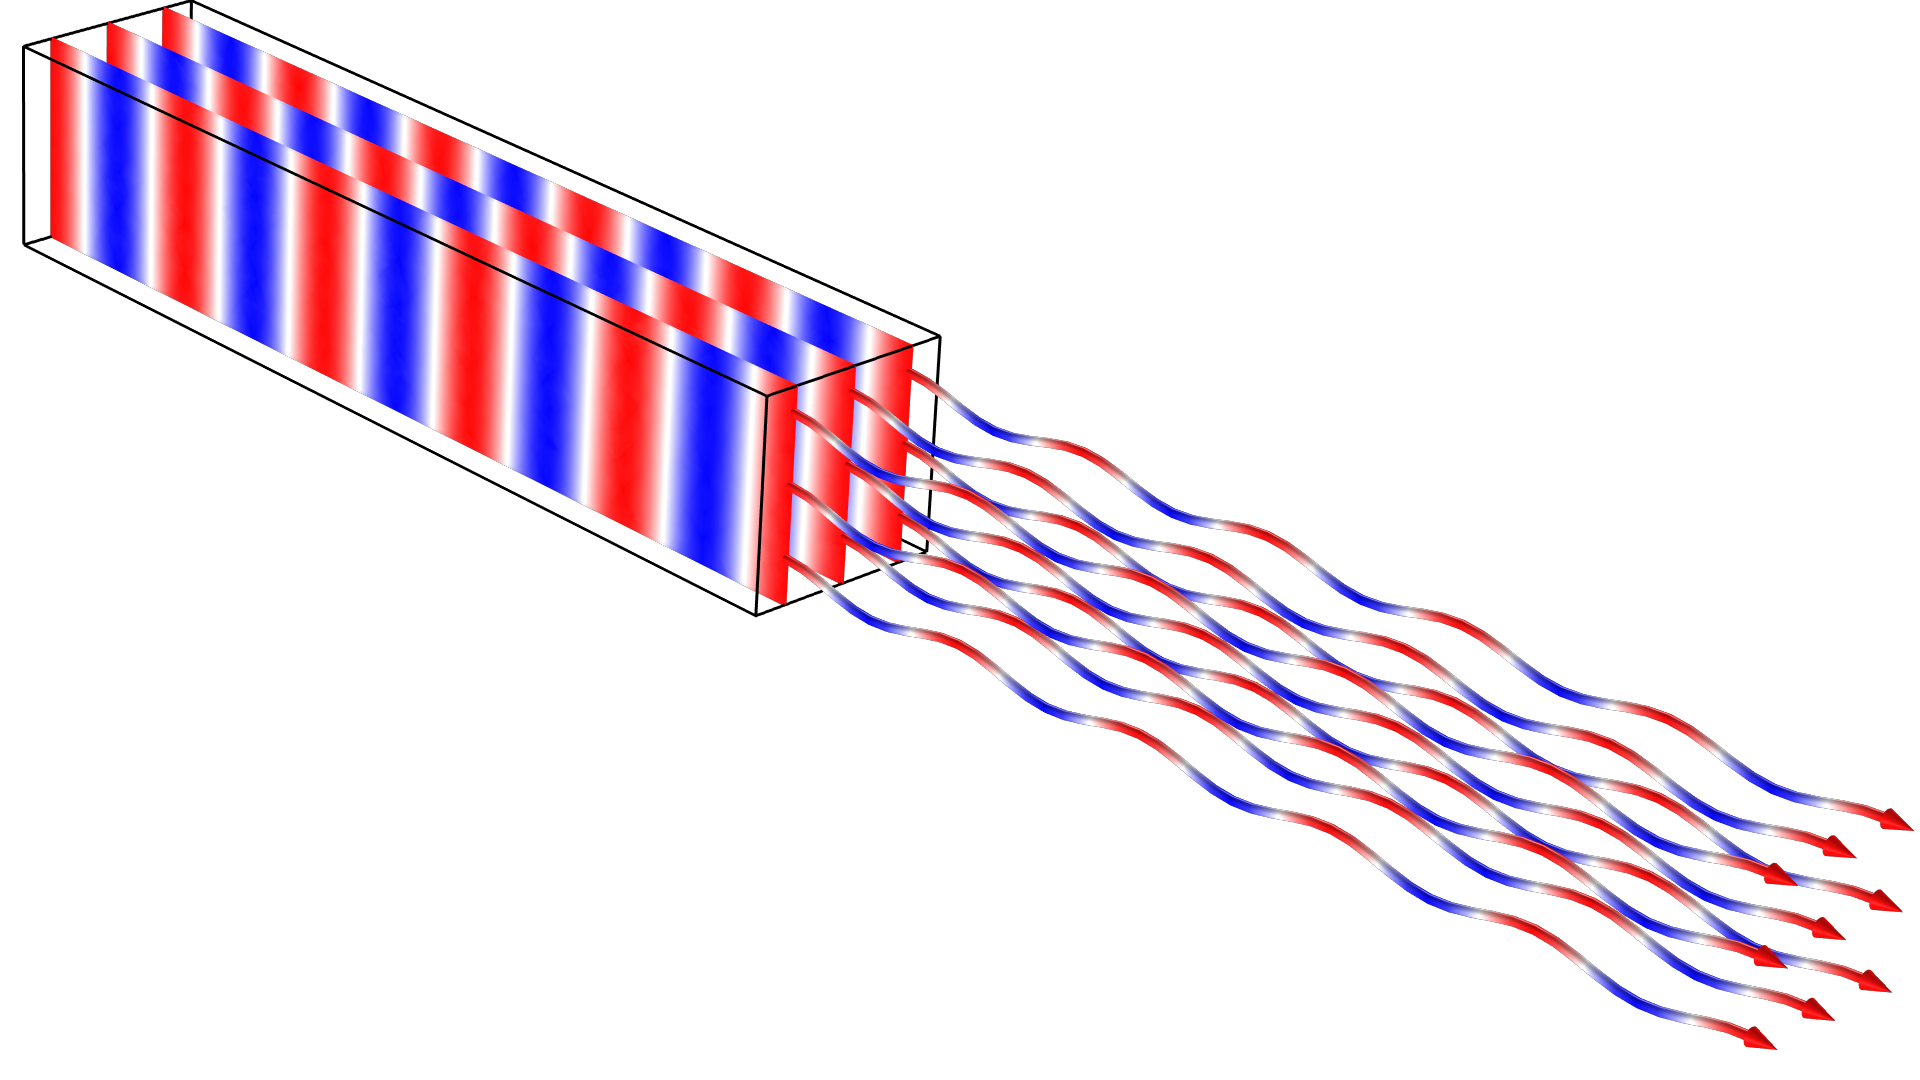 For ray tracing, rays can be released based on the electric field on a boundary.